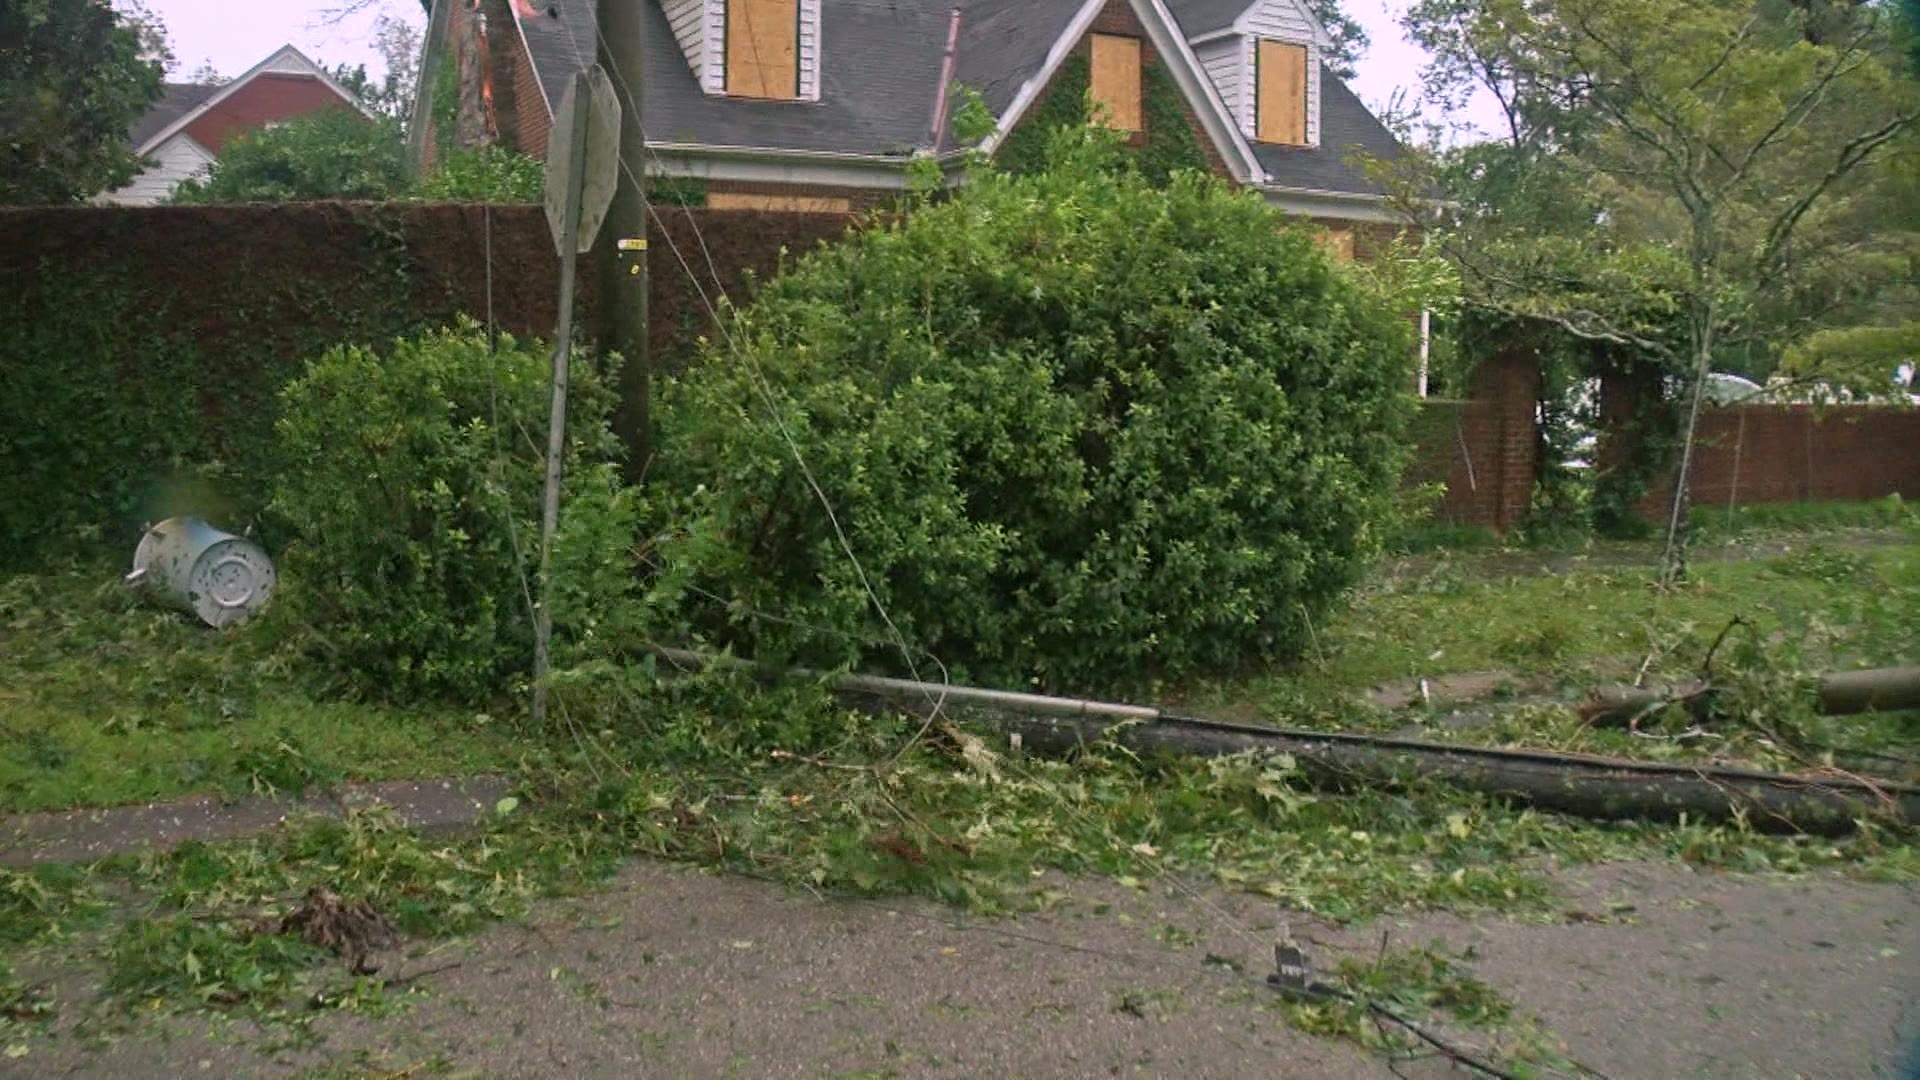 Significant_damage_as_Hurricane_Florence_0_20180914210352-873774424